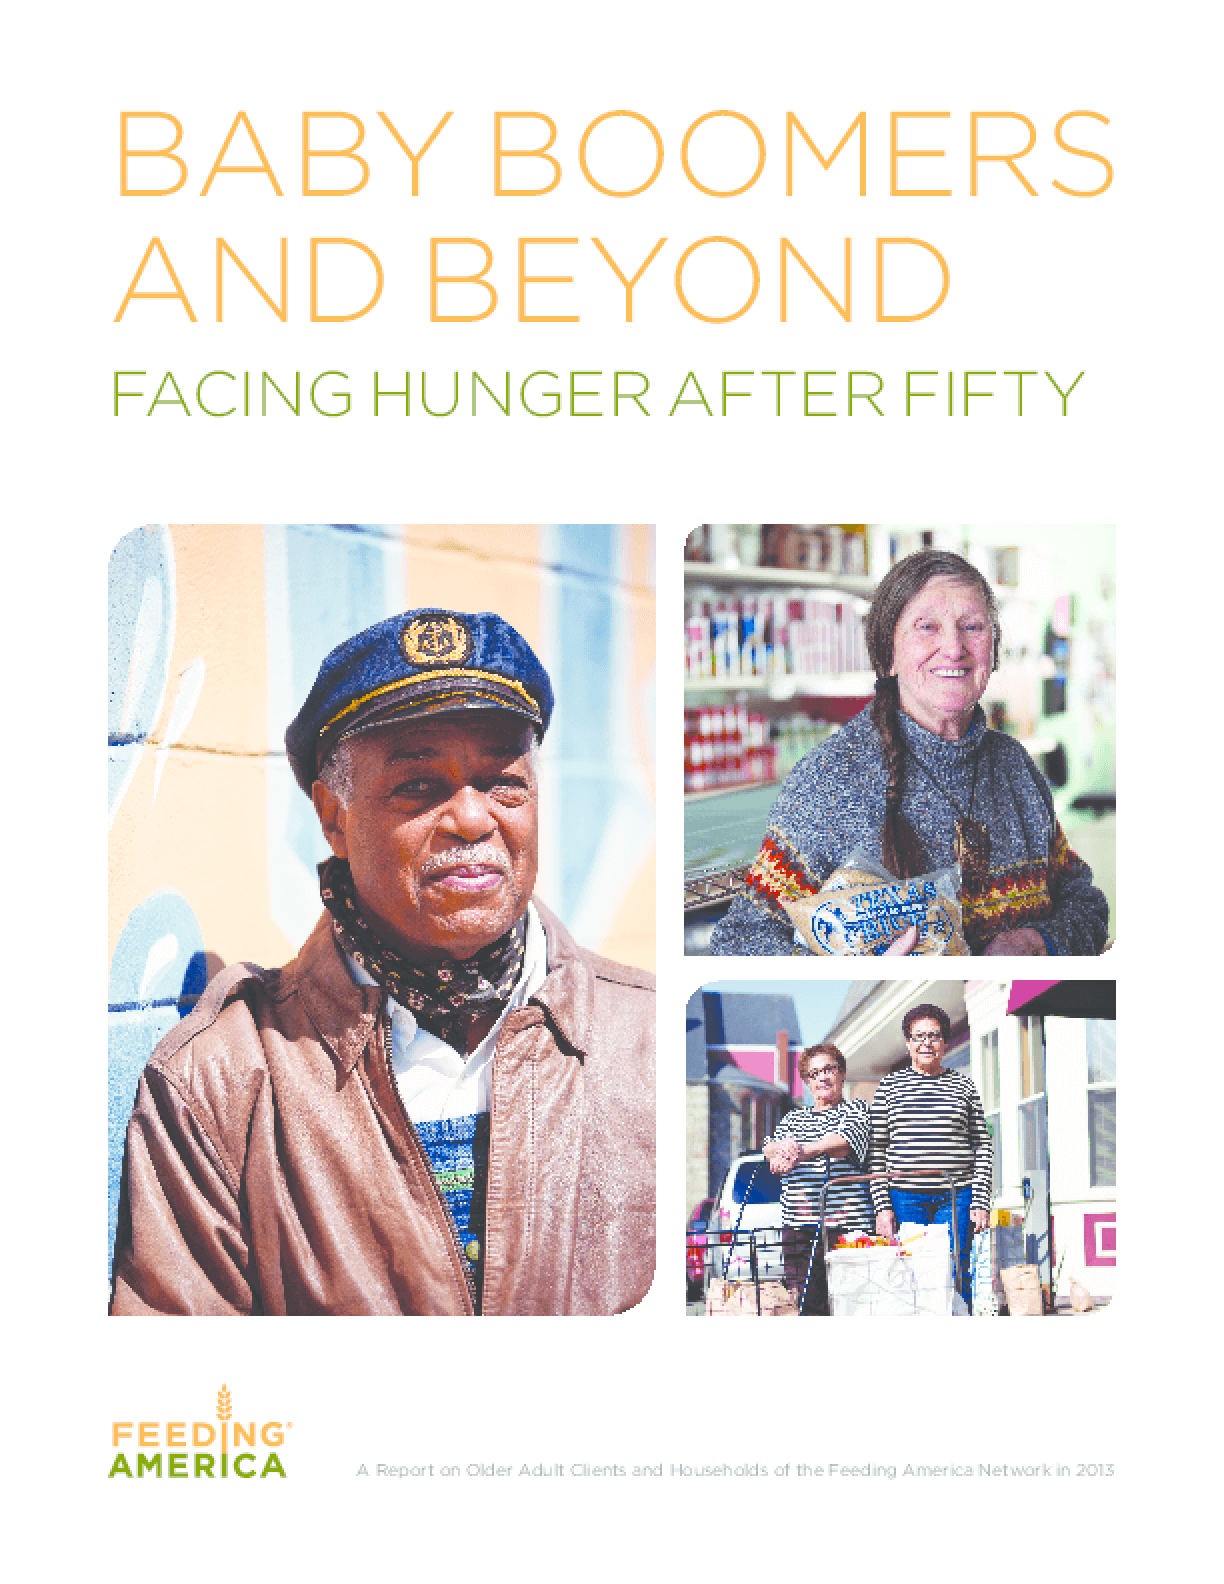 Baby Boomers and Beyond: Facing Hunger After Fifty